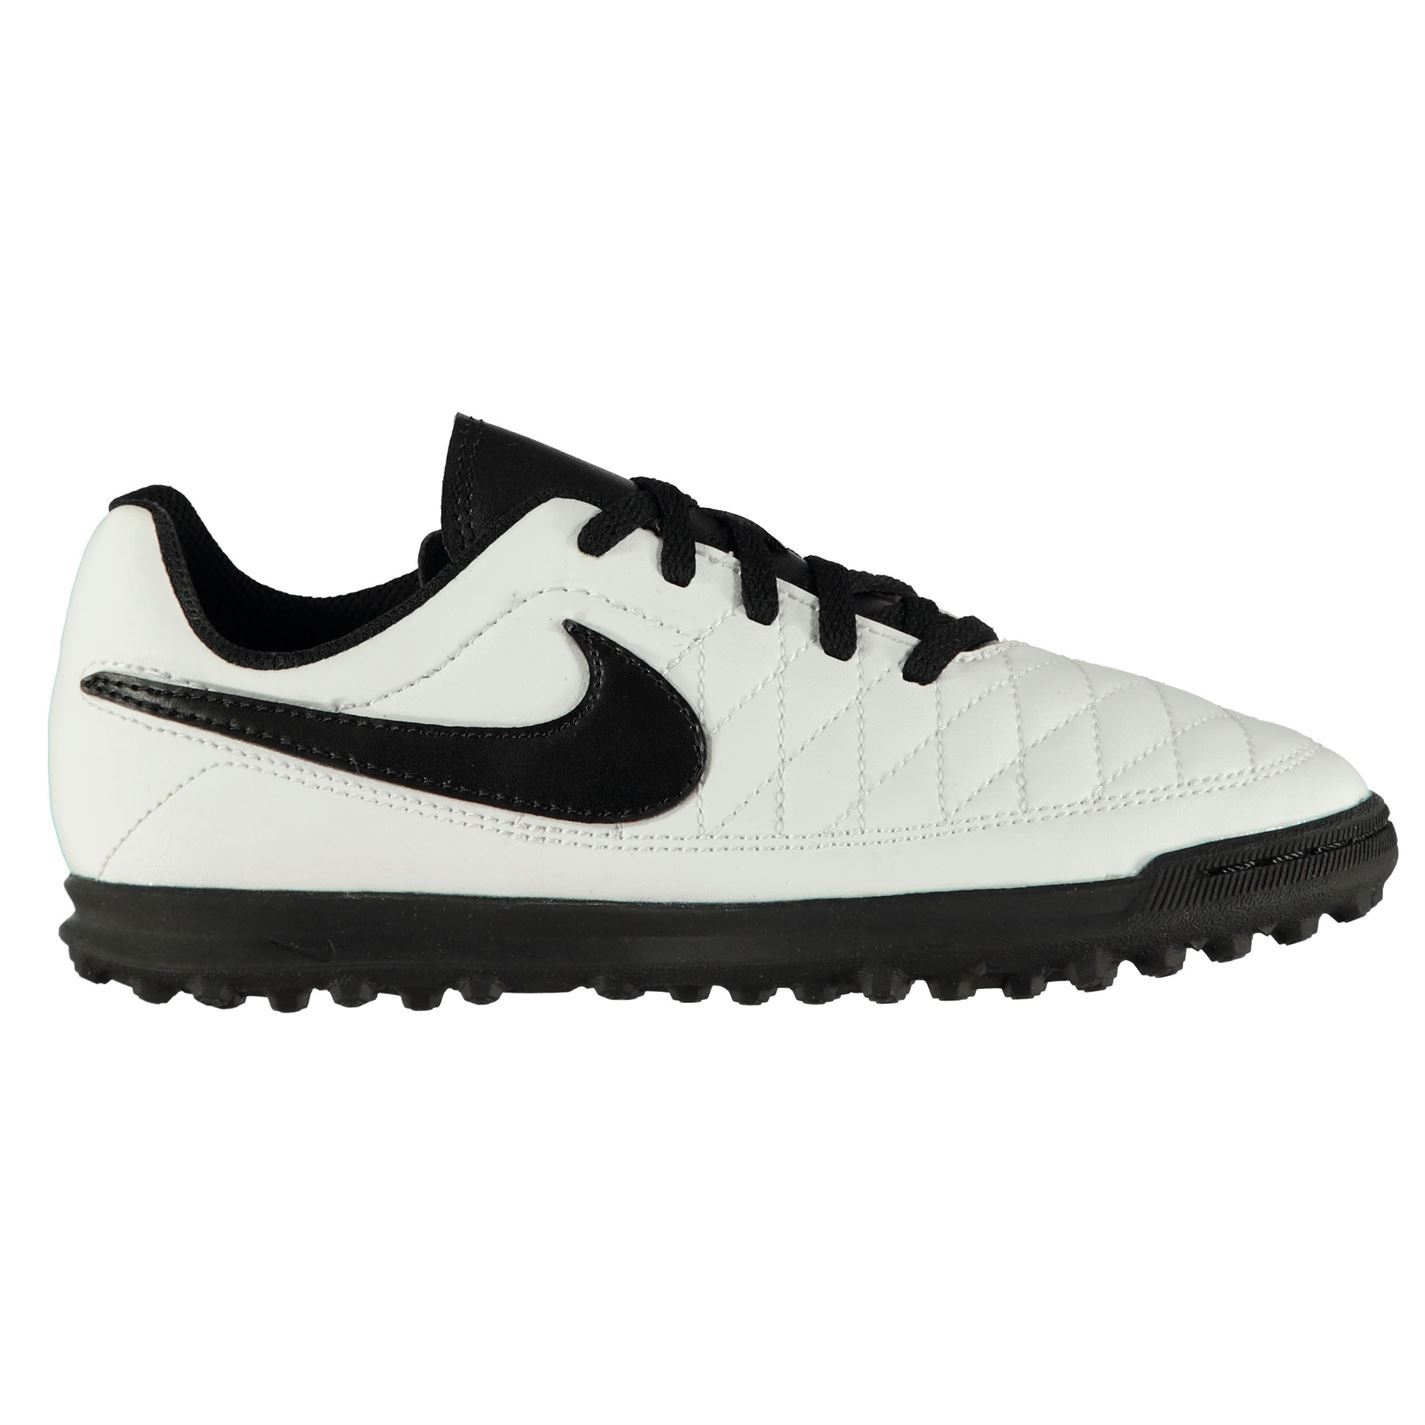 Nike-majestry-Astro-Turf-Football-Baskets-enfant-foot-baskets-chaussures miniature 16